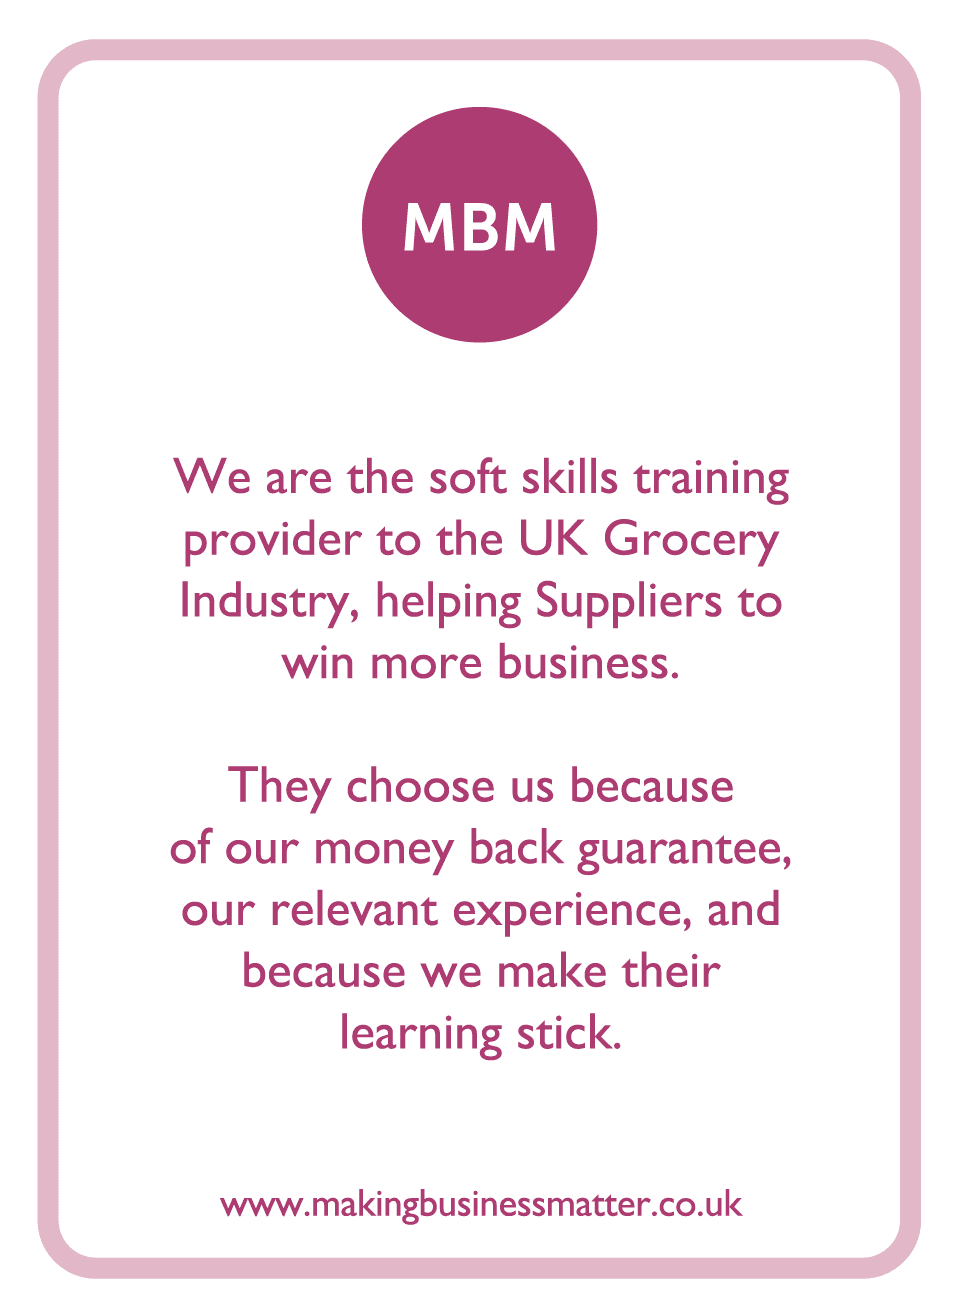 C-suite coaching card titled MBM